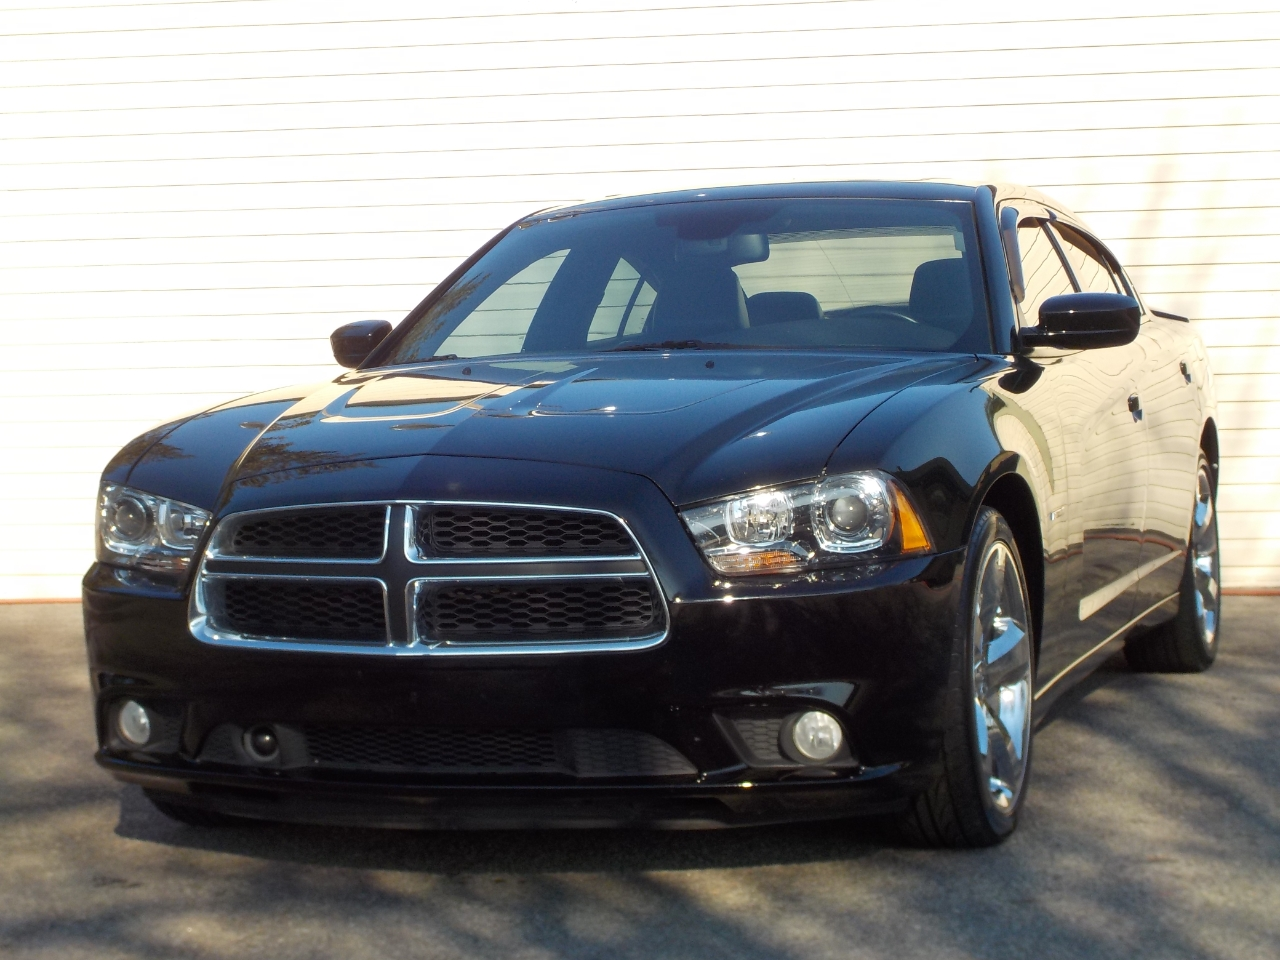 Dodge Charger 4dr Sdn RT Max RWD 2013